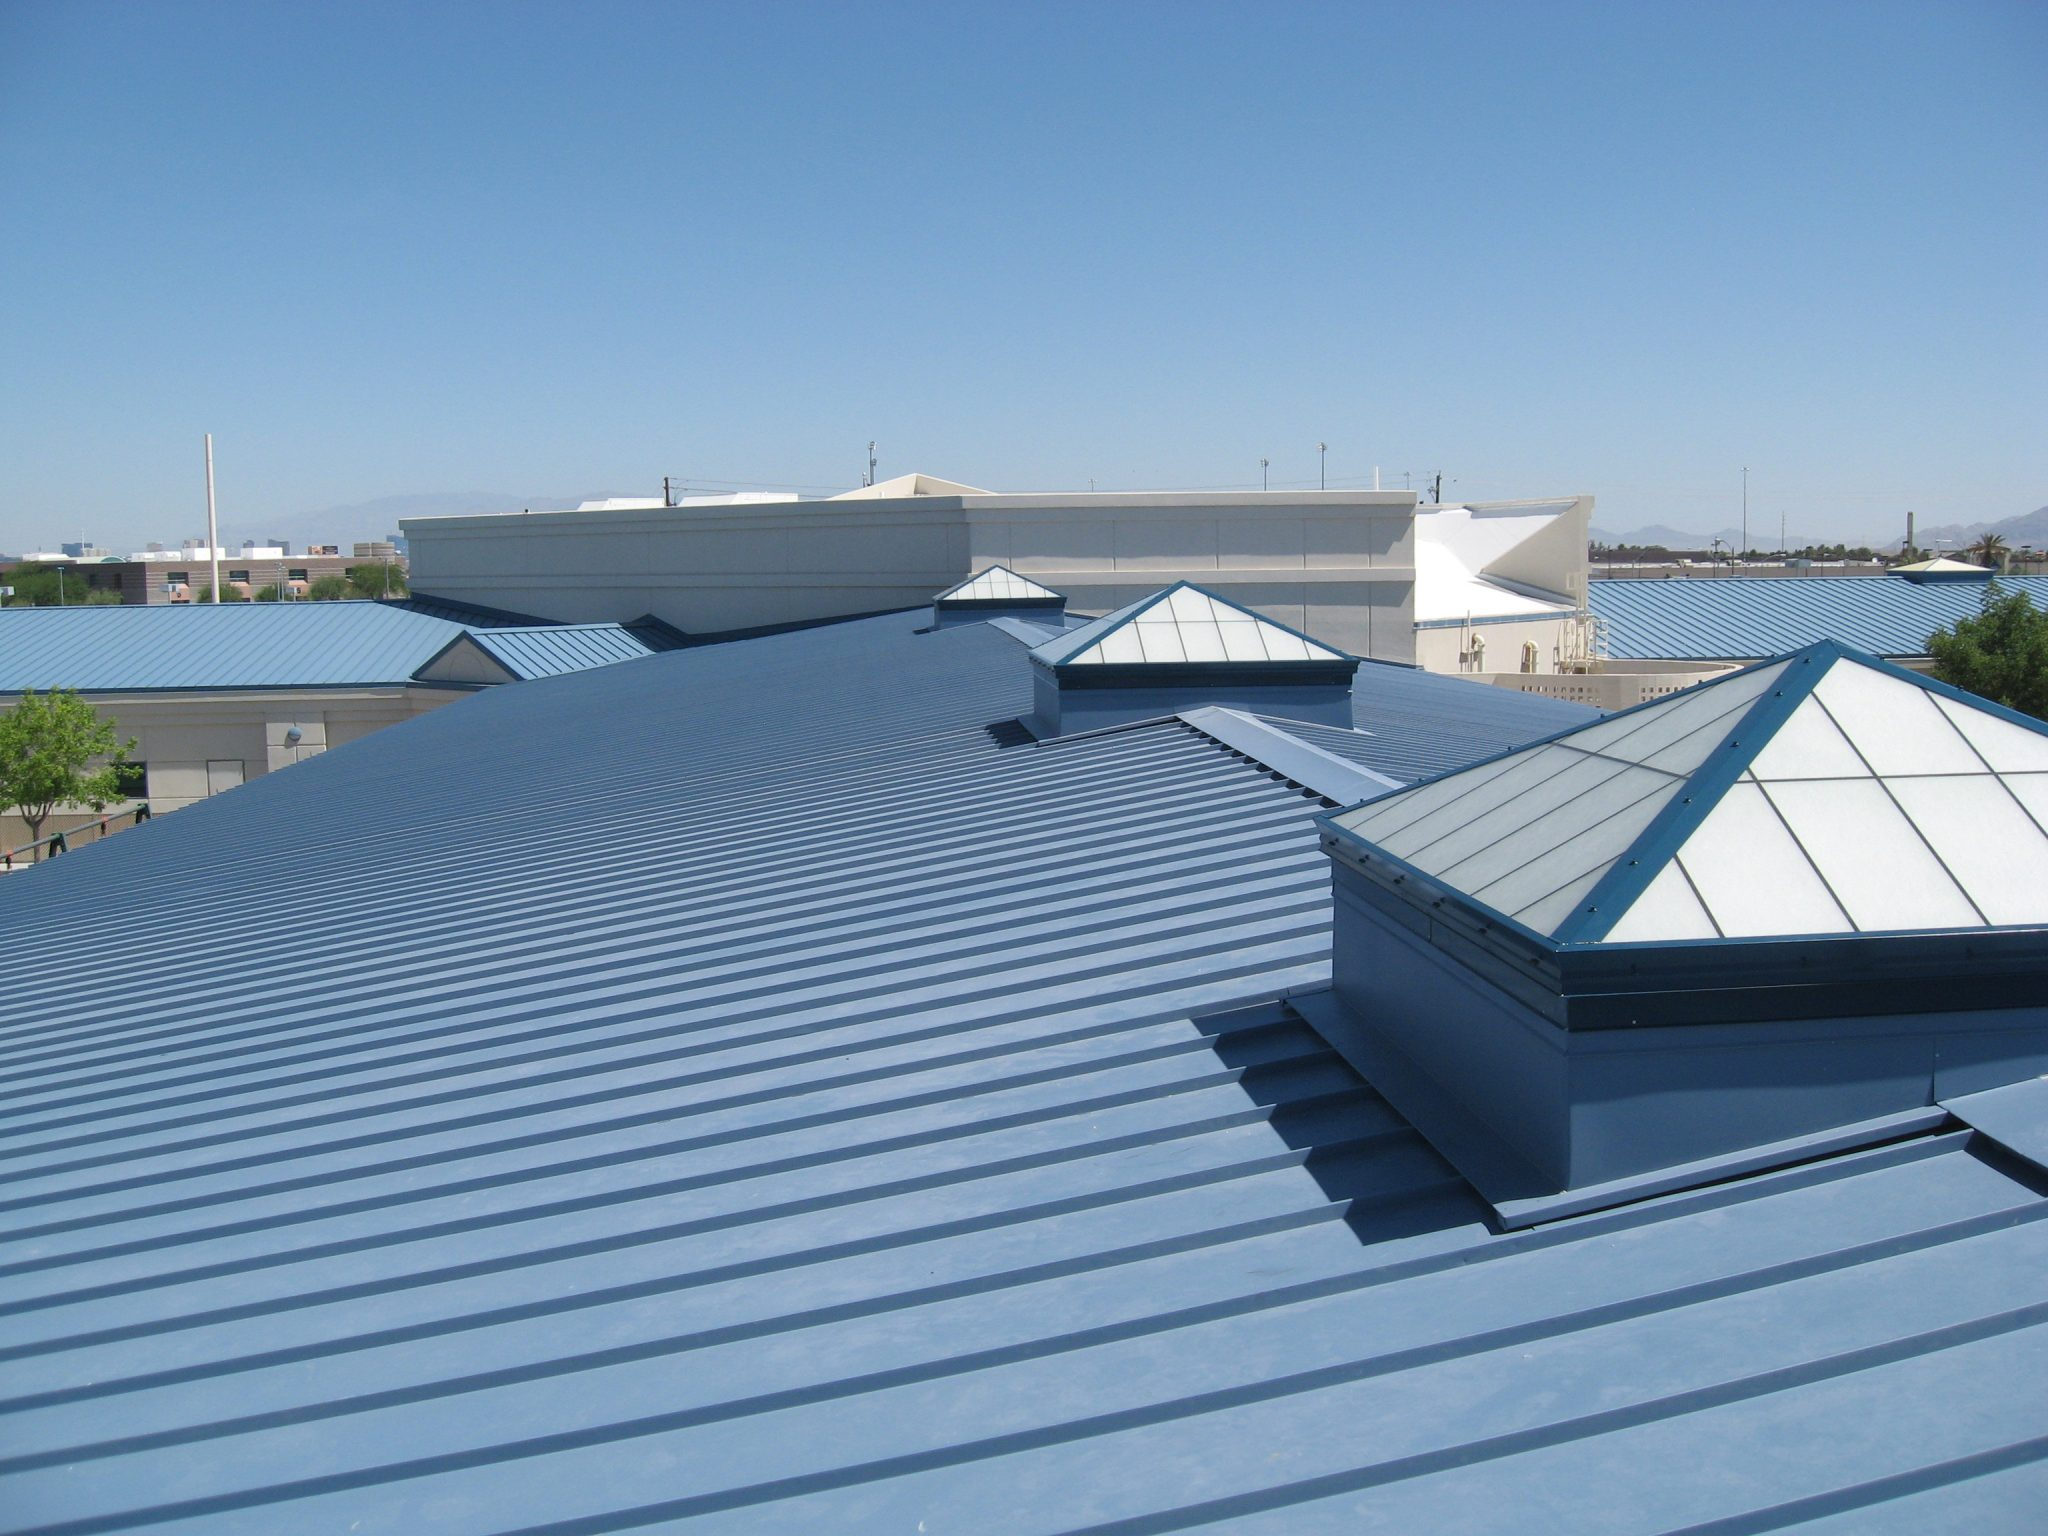 Best Commercial Roofing In Indianapolis Stay Dry Roofing 2048x1536